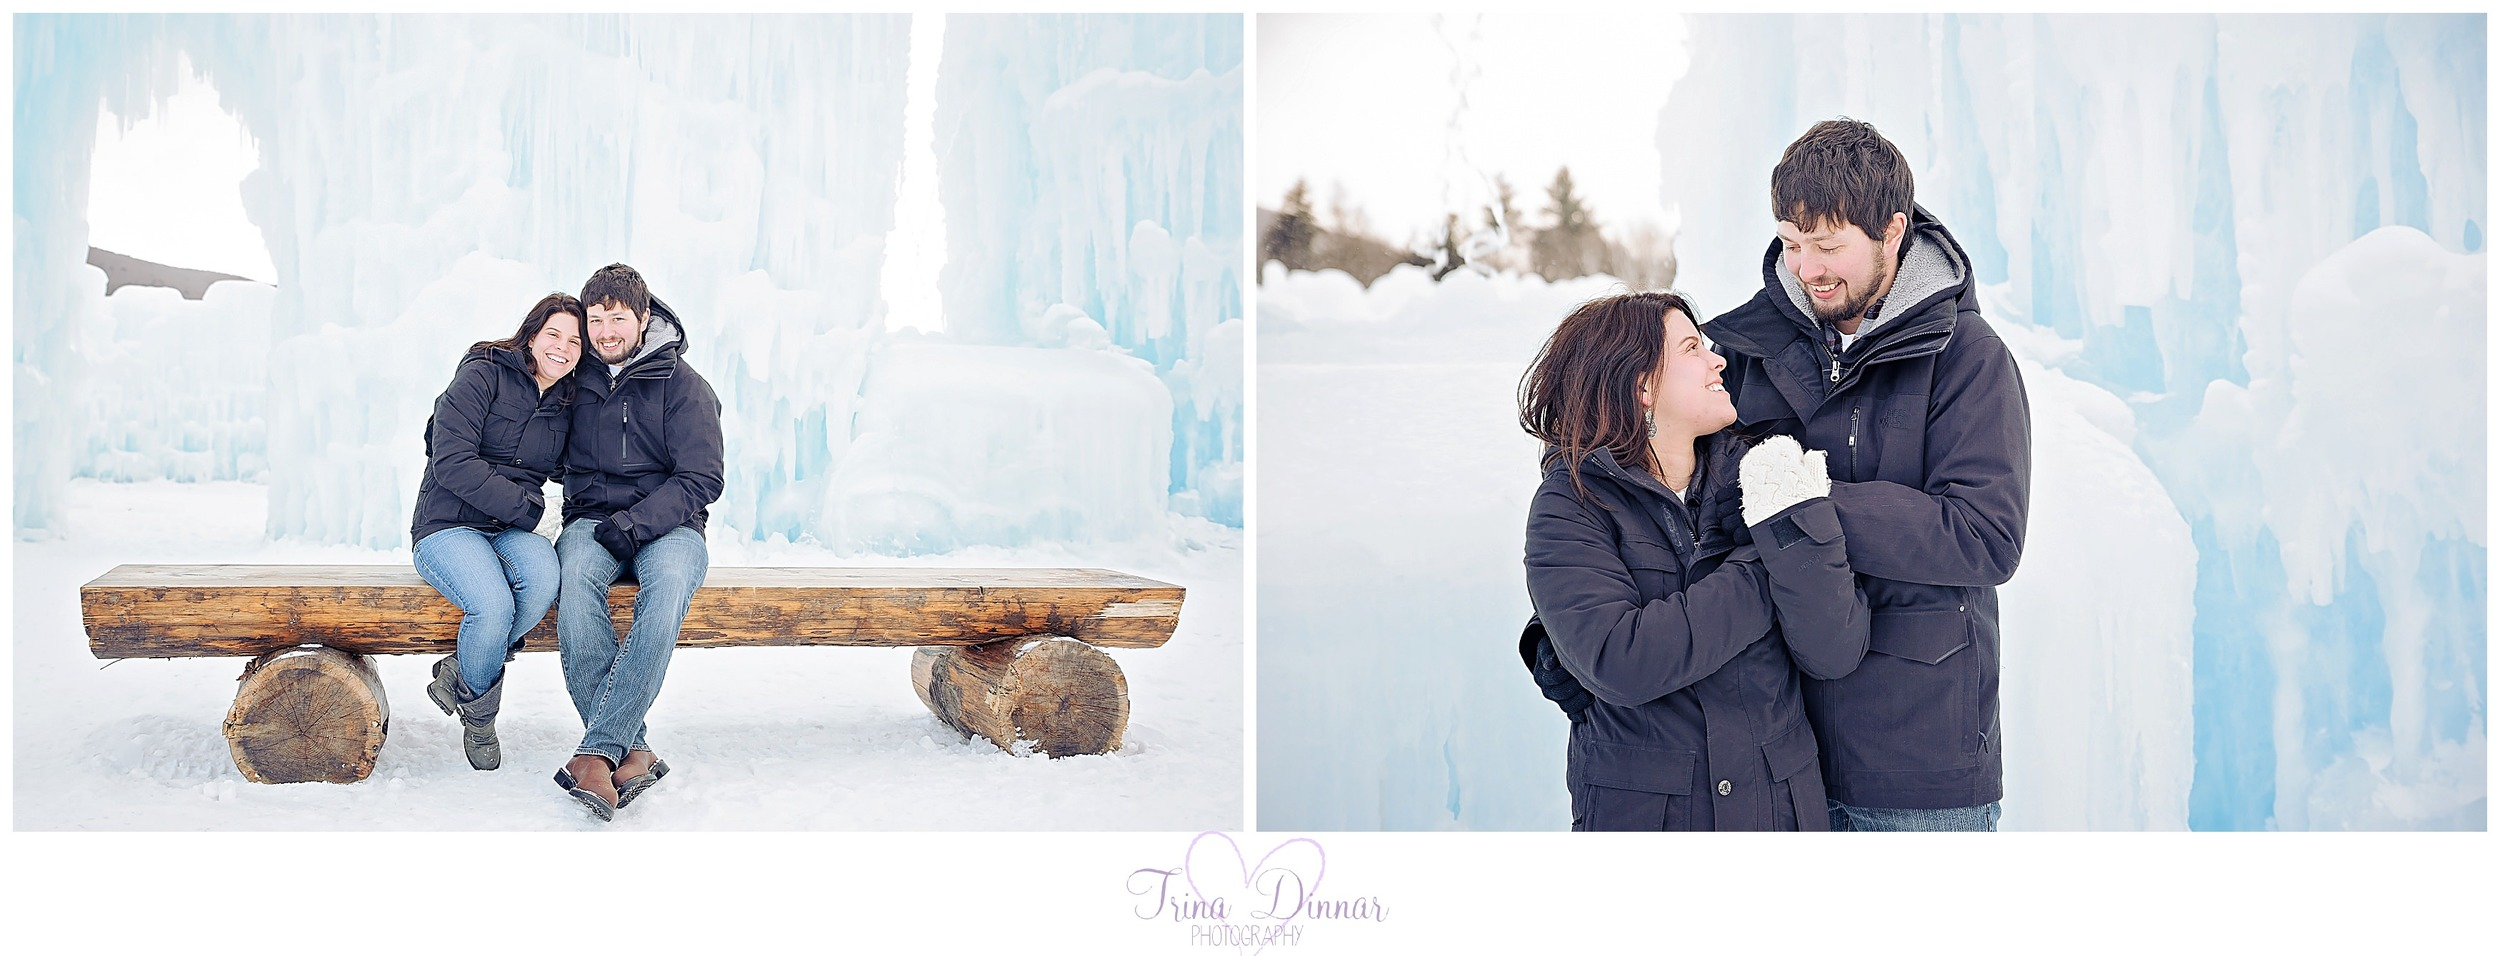 Ice castles adventure with couple in 2016.